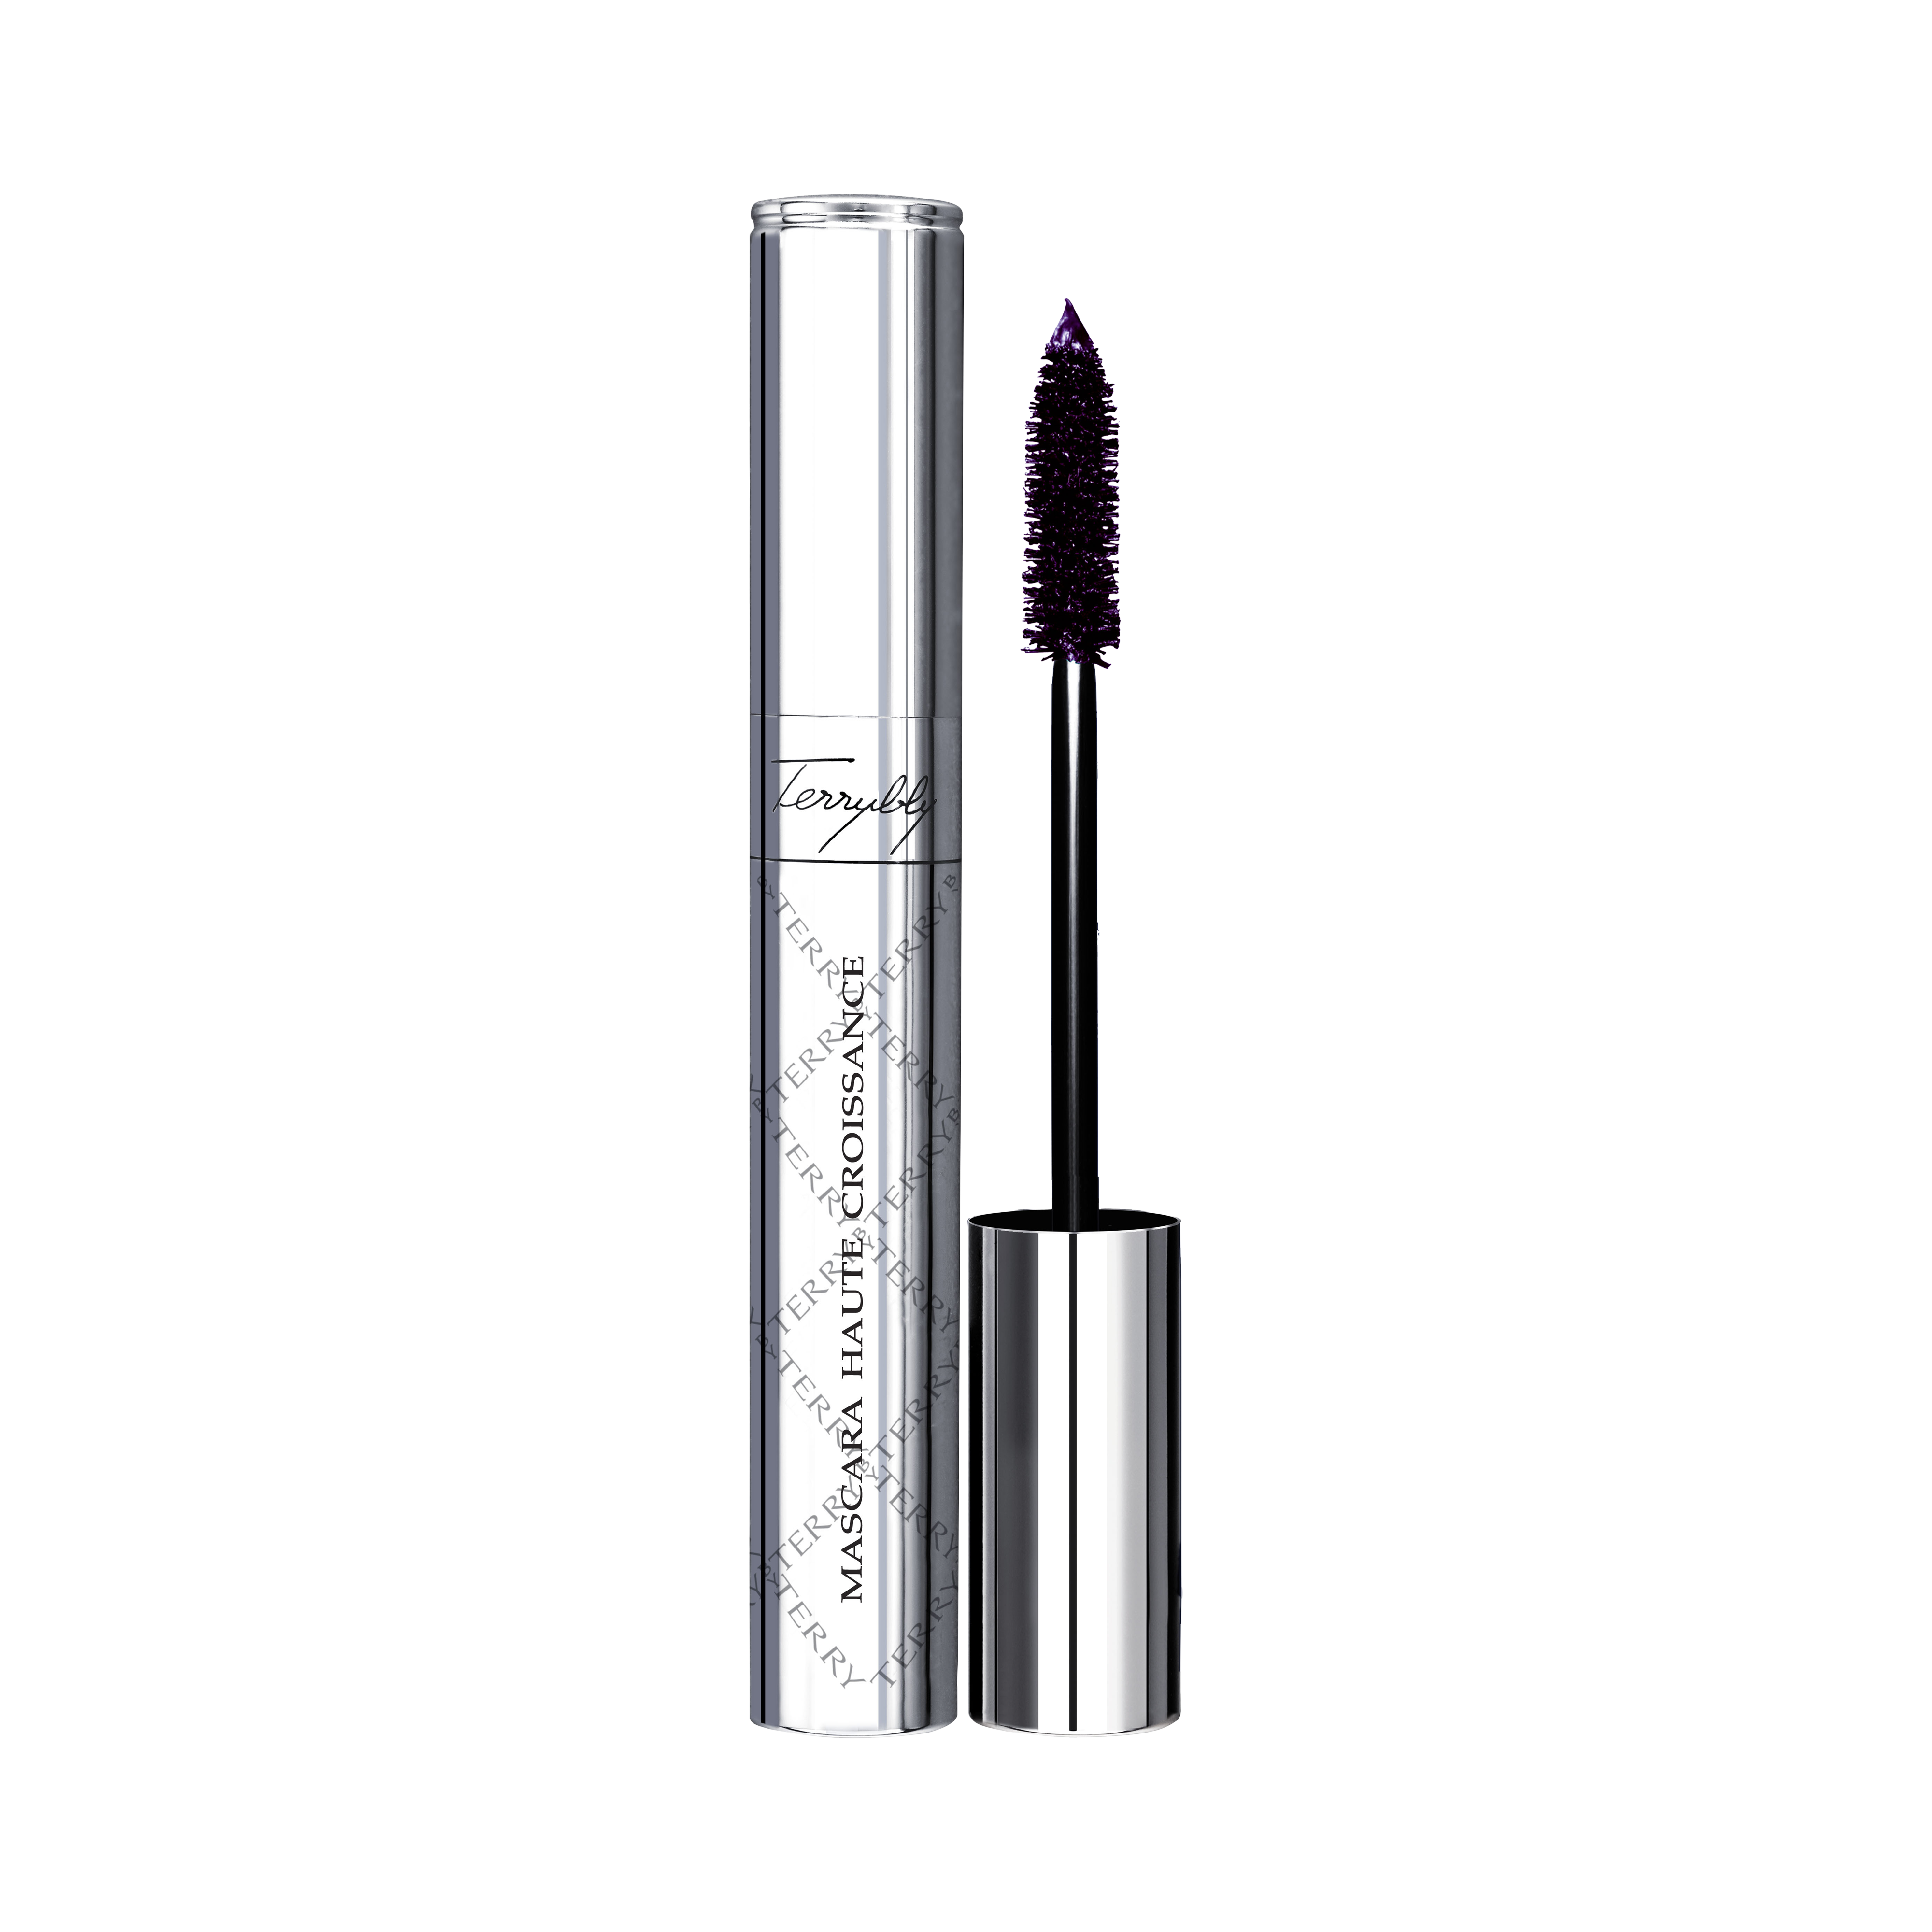 Terrybly Growth Booster Mascara 4 Purple Success